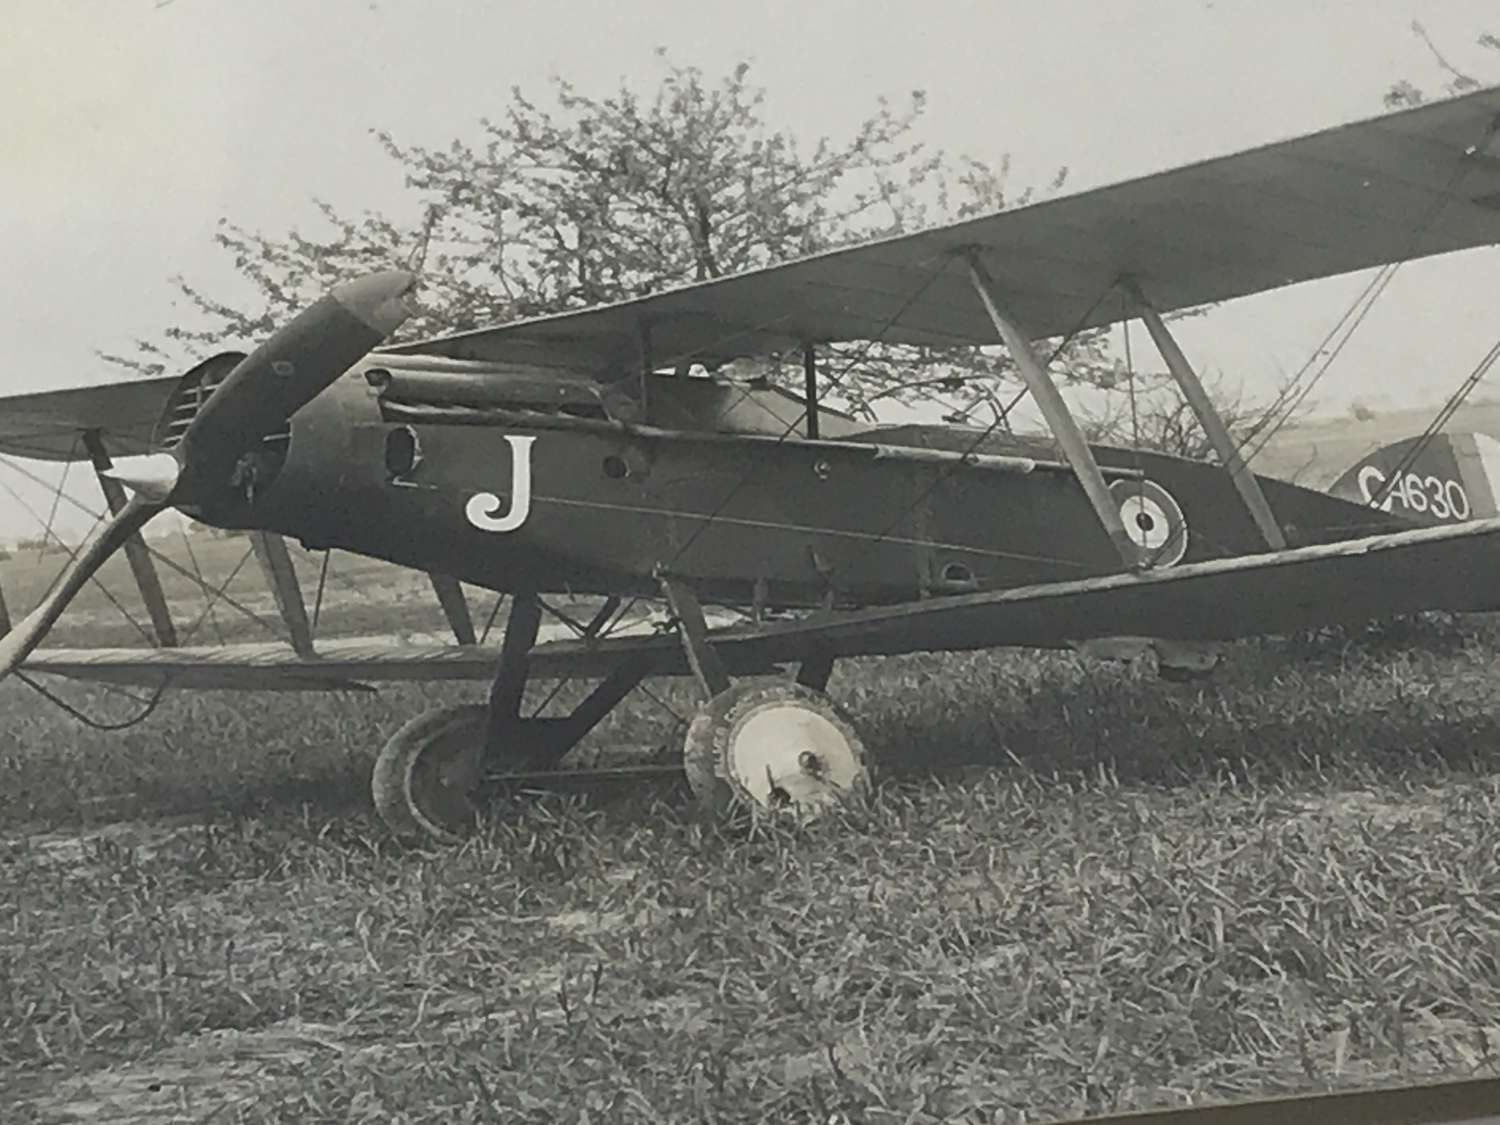 Photograph of a Bristol fighter C 4630